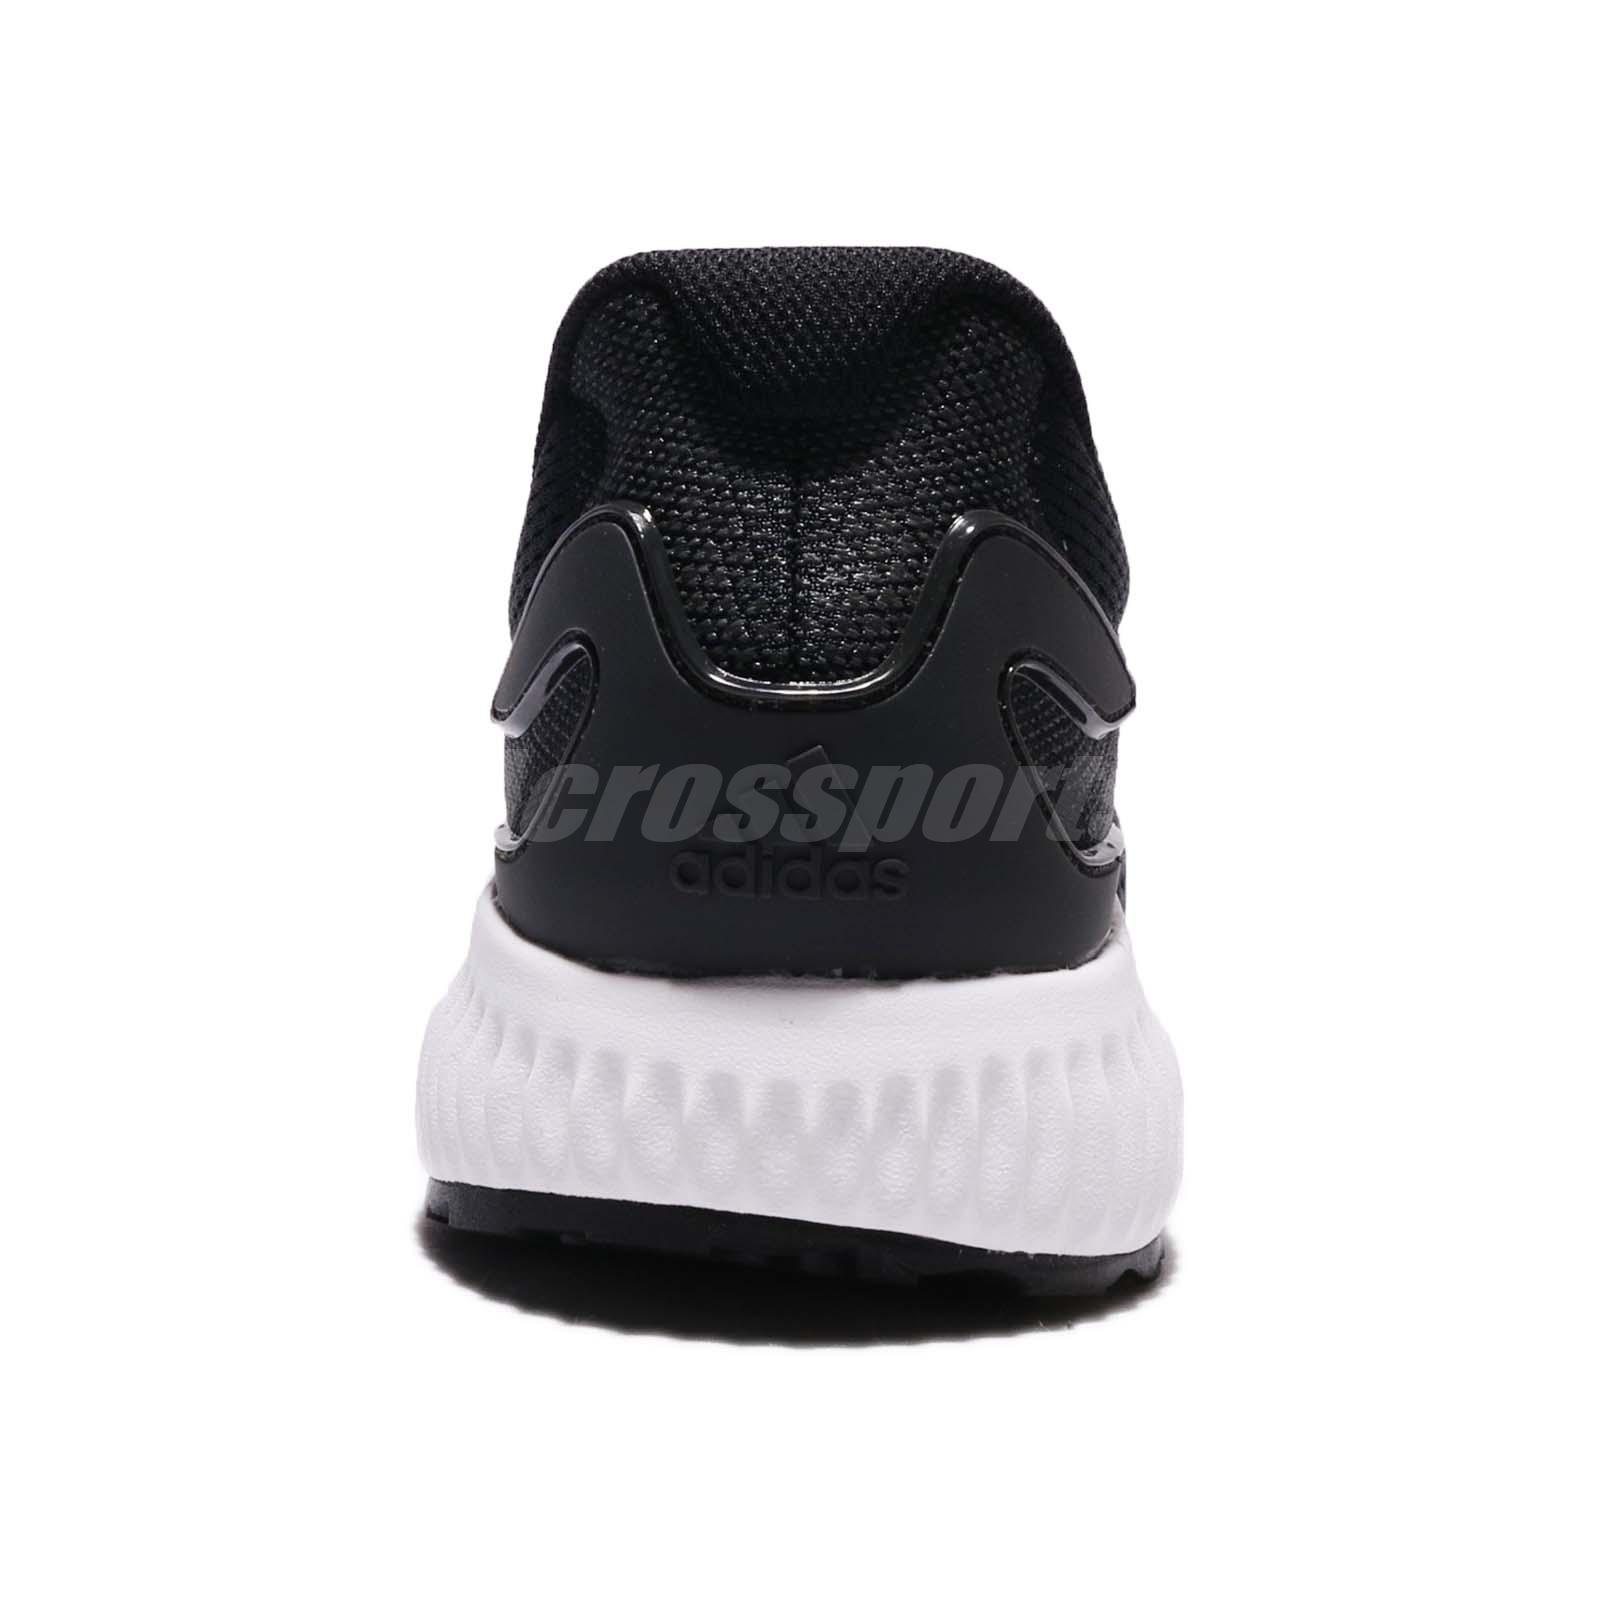 1979a35c5cd adidas Aerobounce M Black White Men Running Shoes Sneakers Trainers ...